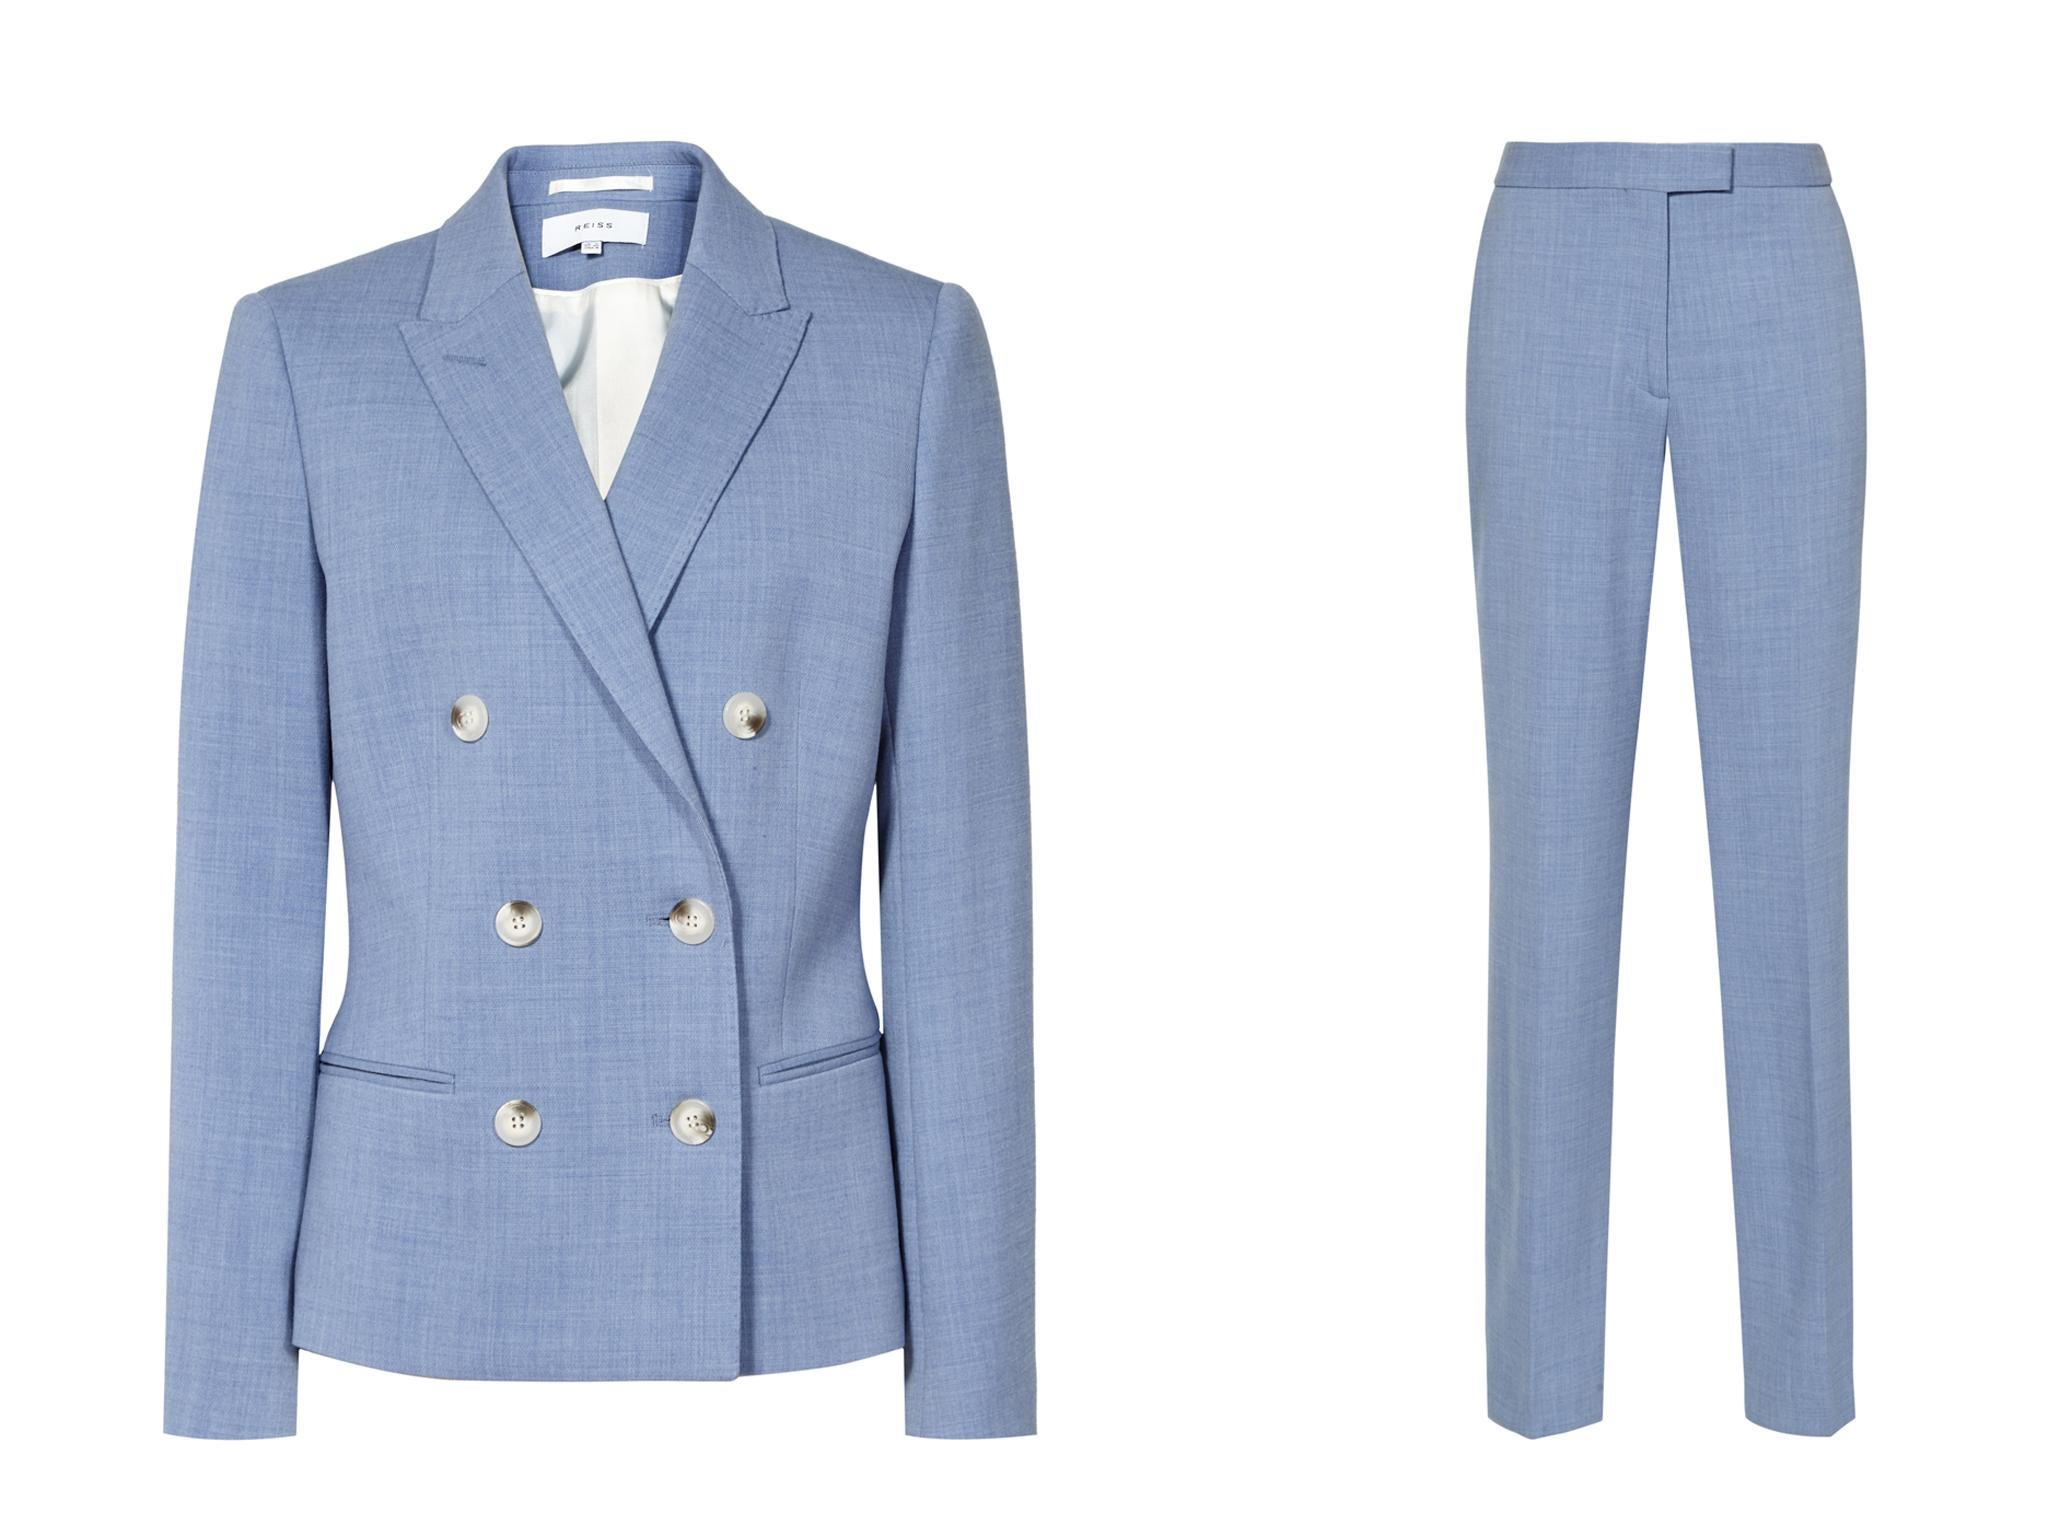 10 best wedding guest outfits | The Independent